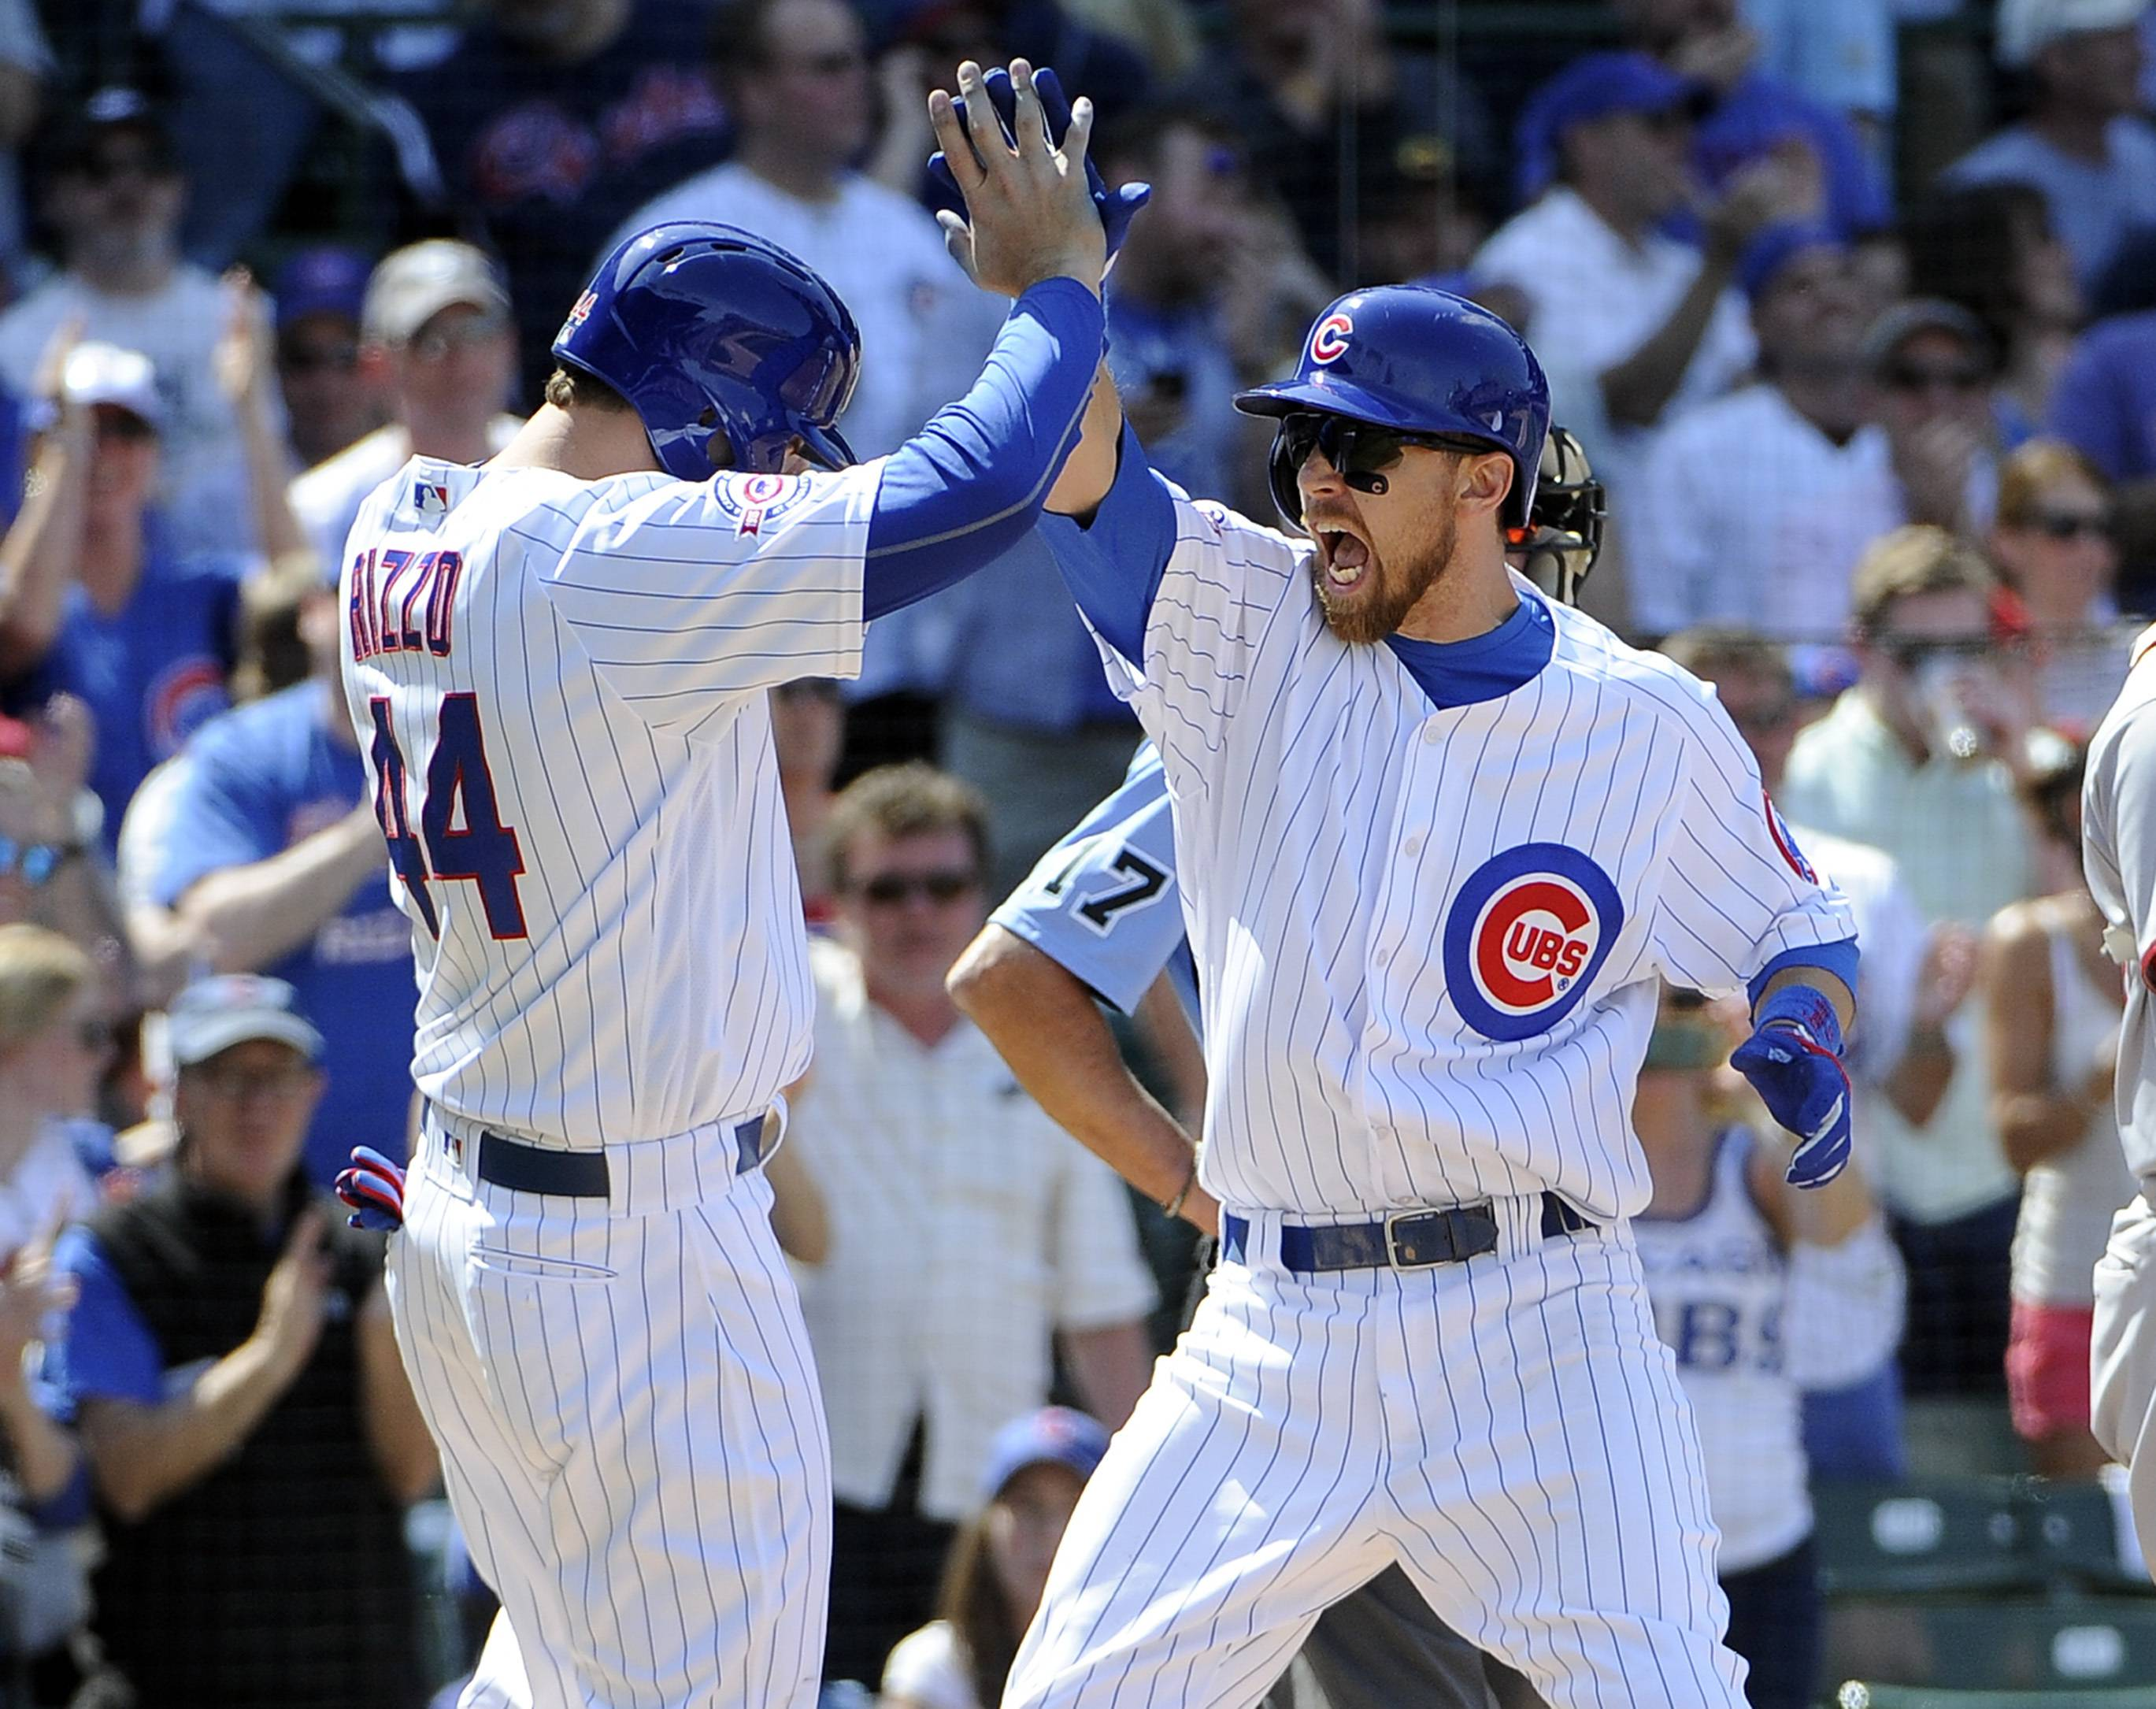 In another example of the good times for this year's Cubs team, second baseman Ben Zobrist, right, gets a high-five from teammate Anthony Rizzo (44) after hitting a three-run homer to help the Cubs beat the Washington Nationals last week.